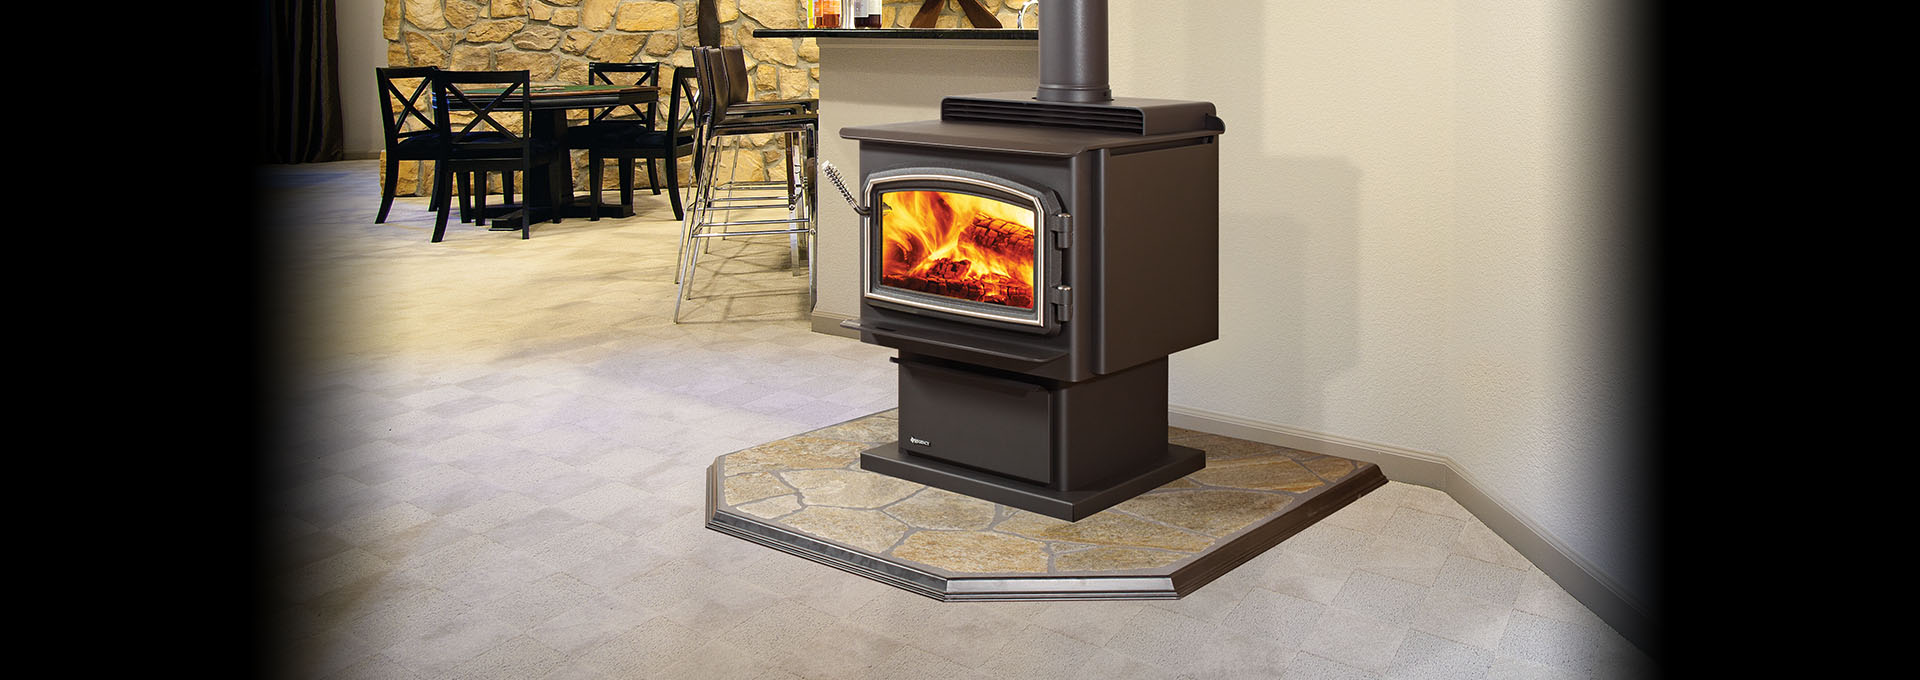 F3100 Large Non Catalytic Wood Burning Stove By Regency